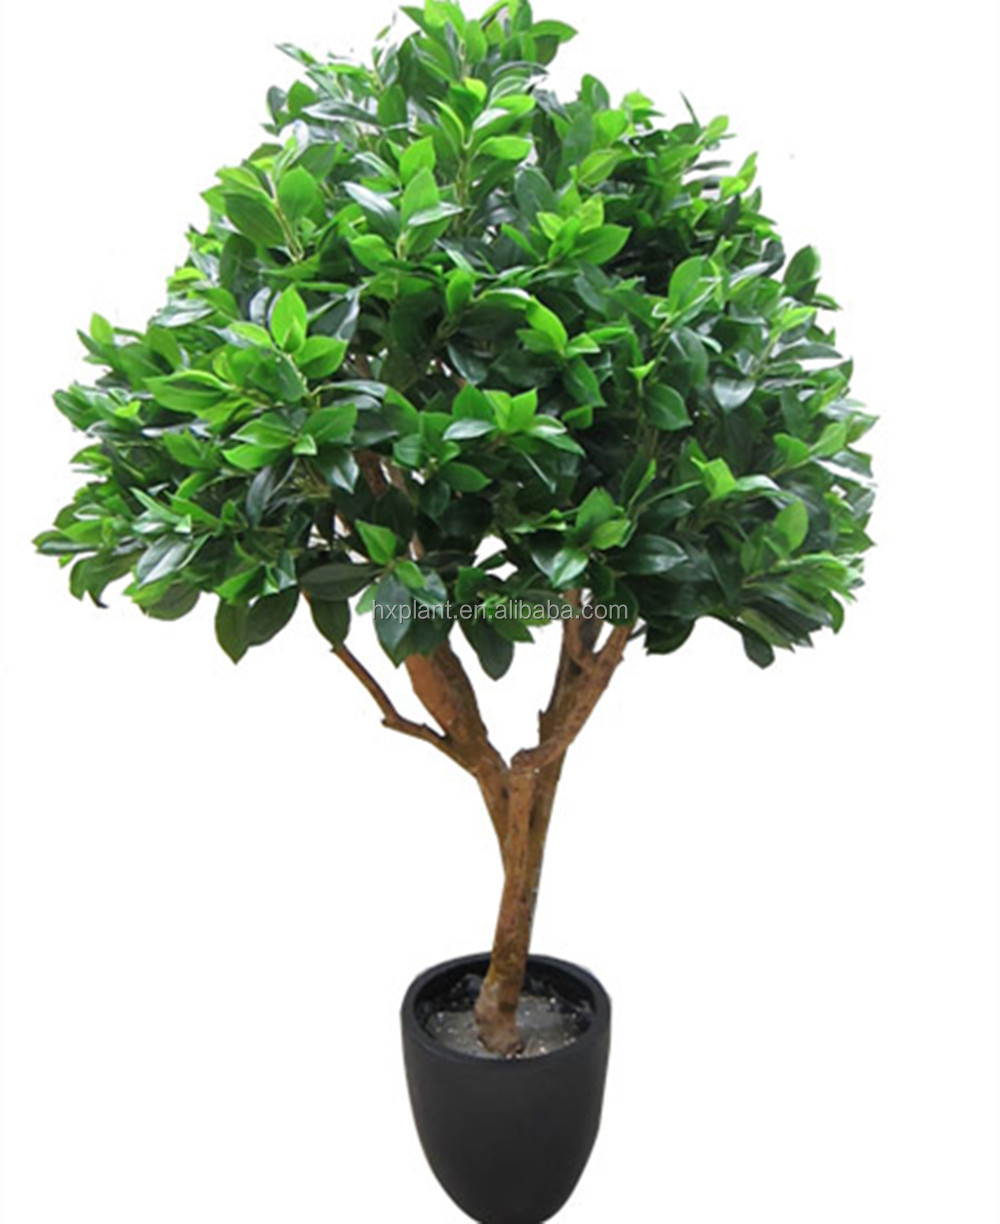 Decorative Indoor Trees Indoor Decorative Bonsai Flower Treeslarge Outdoor Bonsai Trees